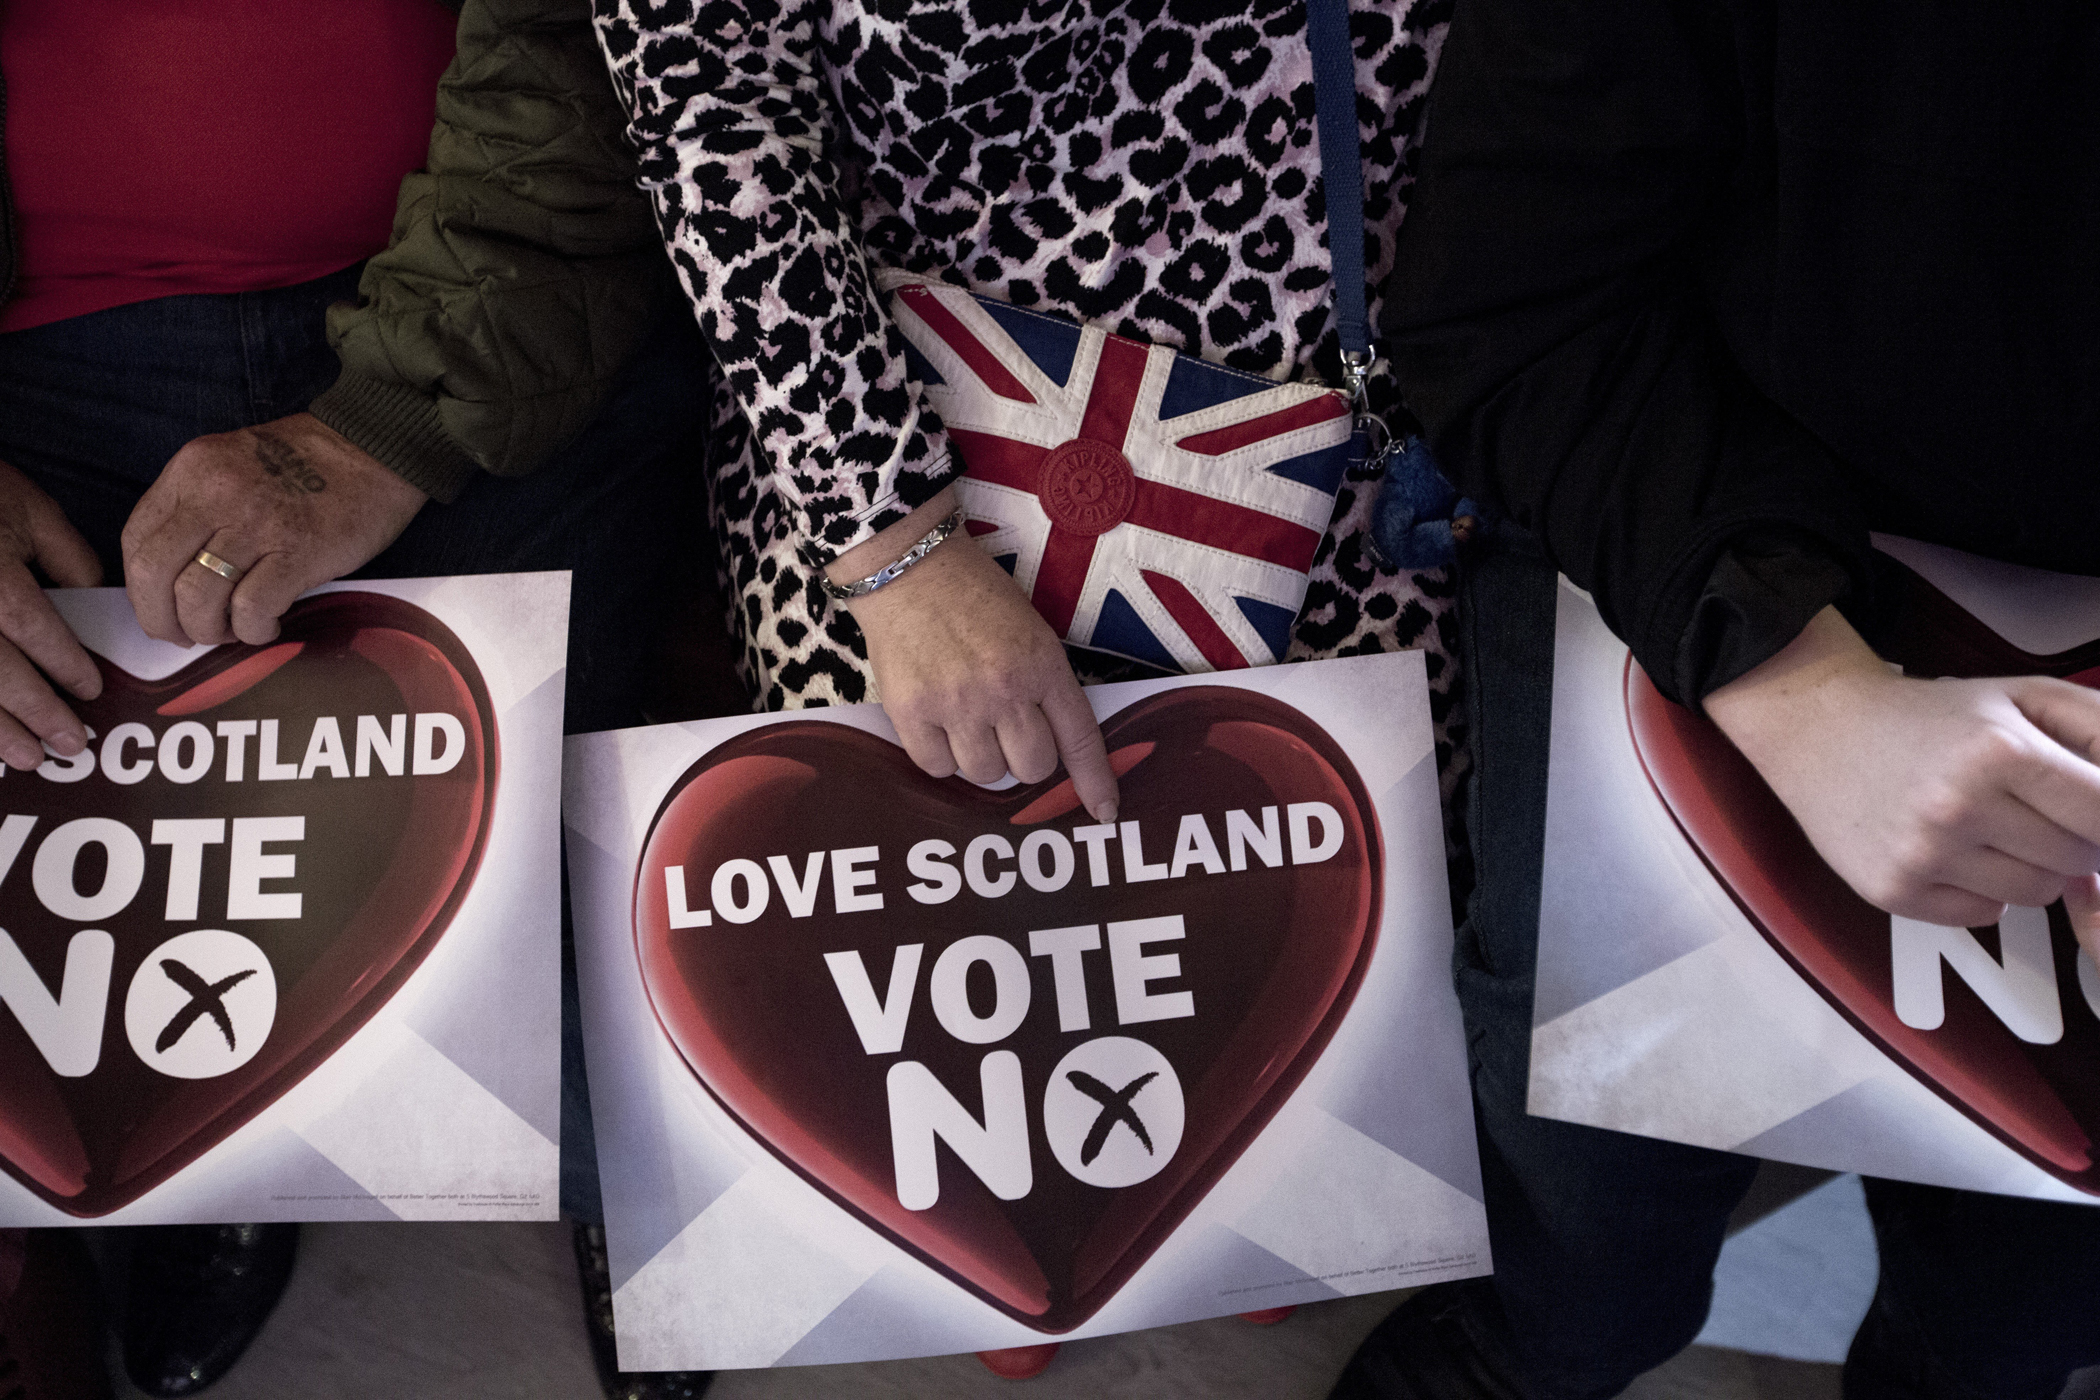 A woman with a 'Vote No' sign and a bag bearing a British flag, at an anti-Scottish independence Better Together rally at Community Central Hall, Glasgow, Sept. 17, 2014.